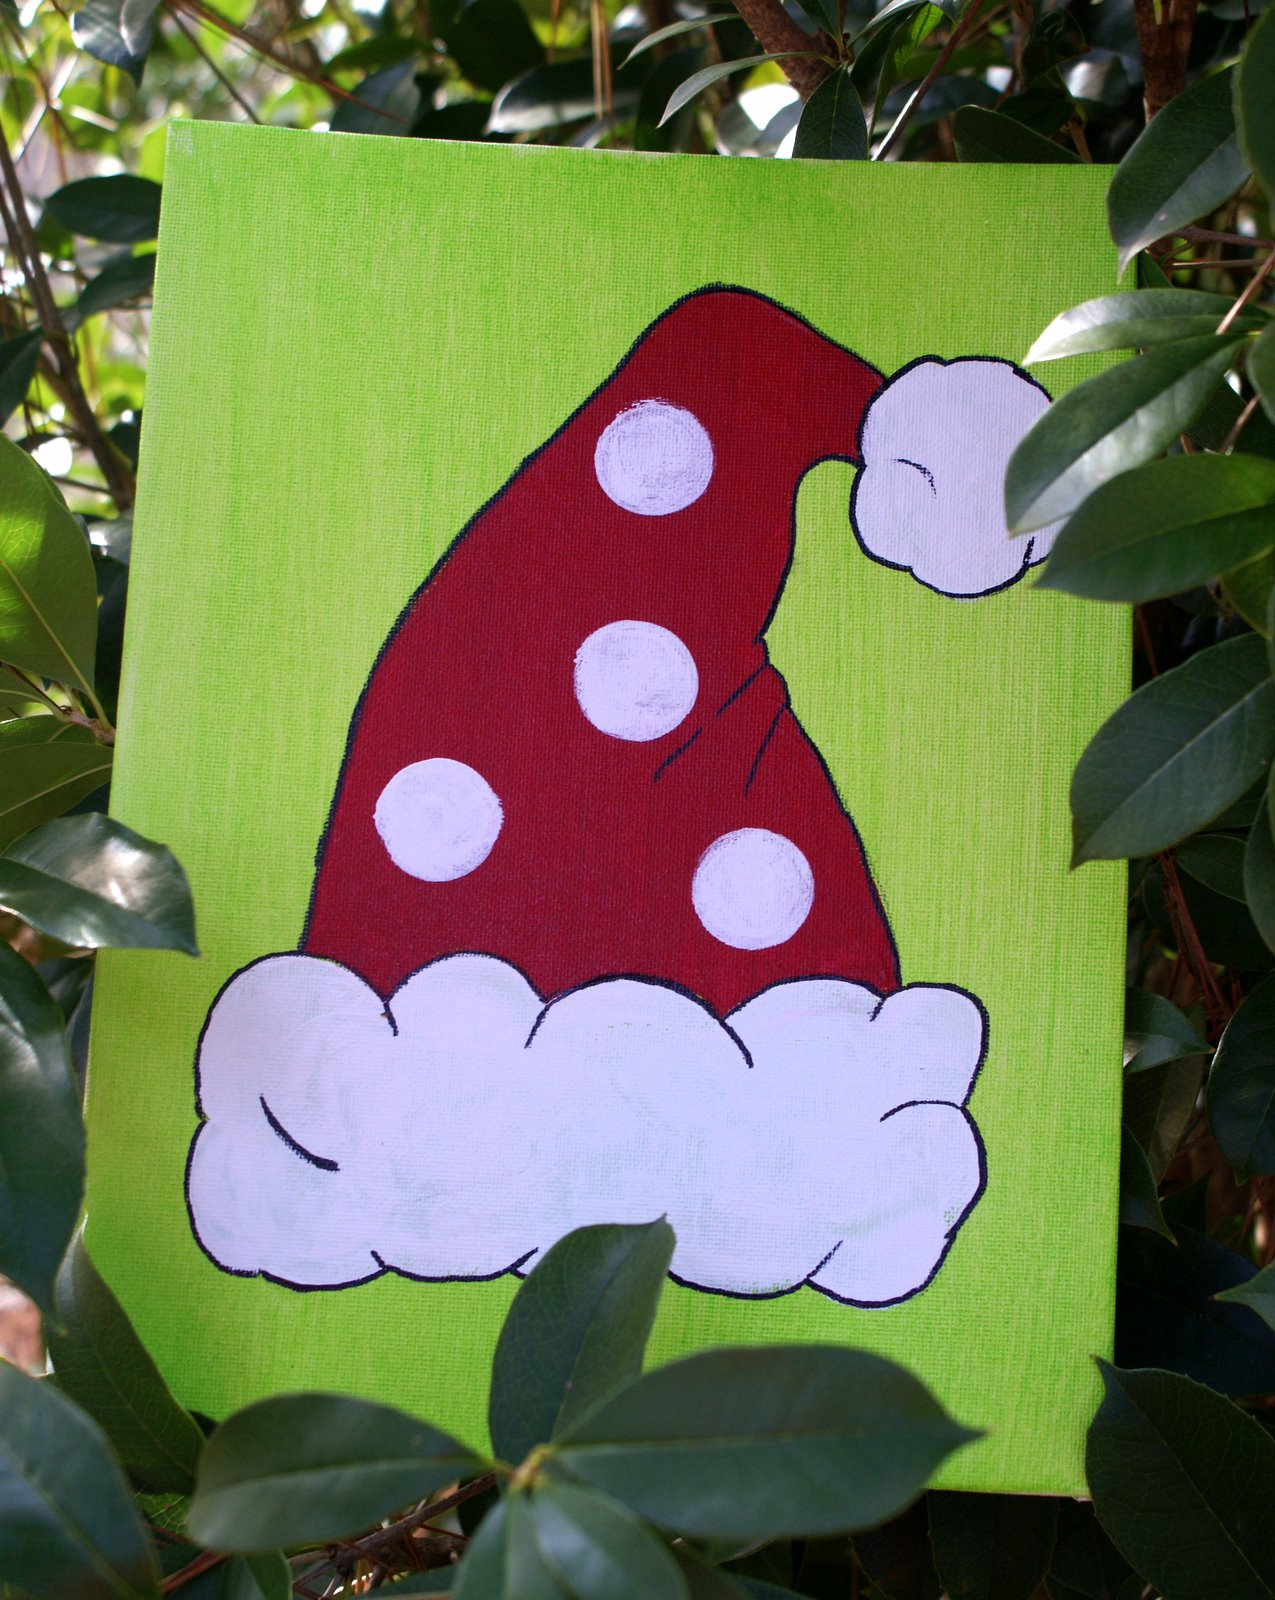 195c7666b080bd38e5706ad2cef23fbf Easy Paintings On Canvas 271767d1f1f9103eb2651fe545a78c5c Christmas Craft Ideas 81 Santa2bart2b001